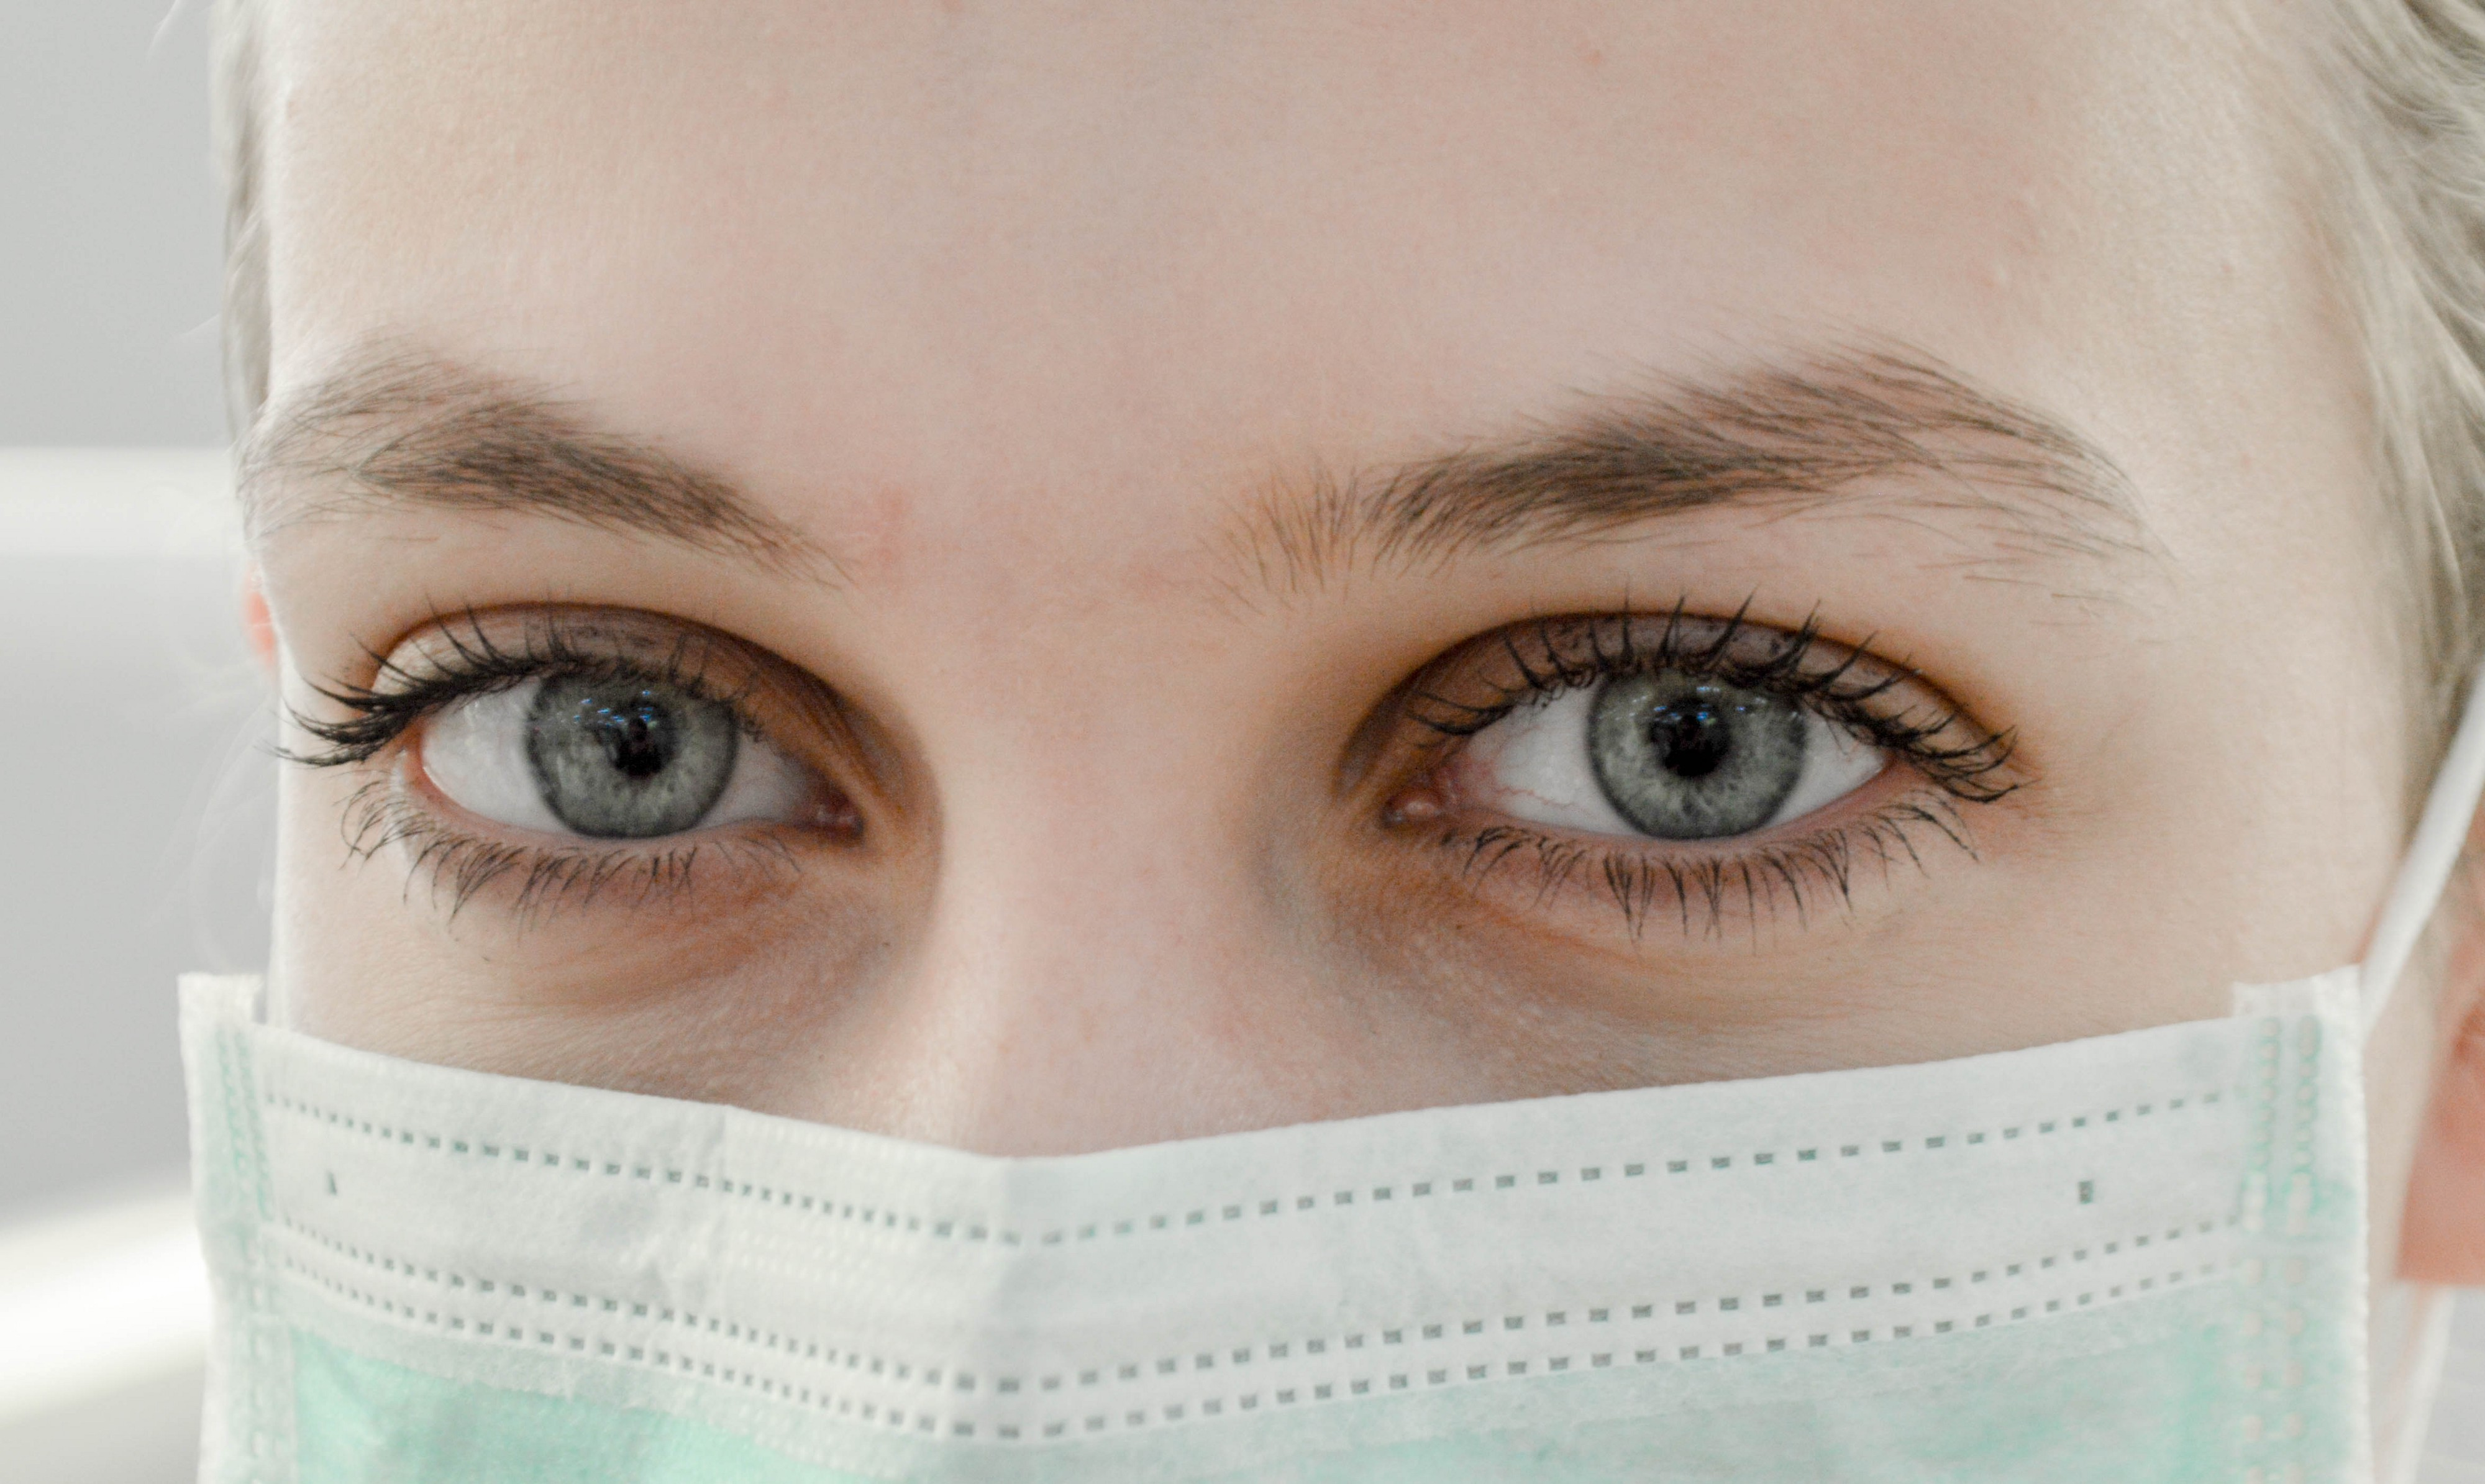 The eyes of a woman wearing a protective face mask